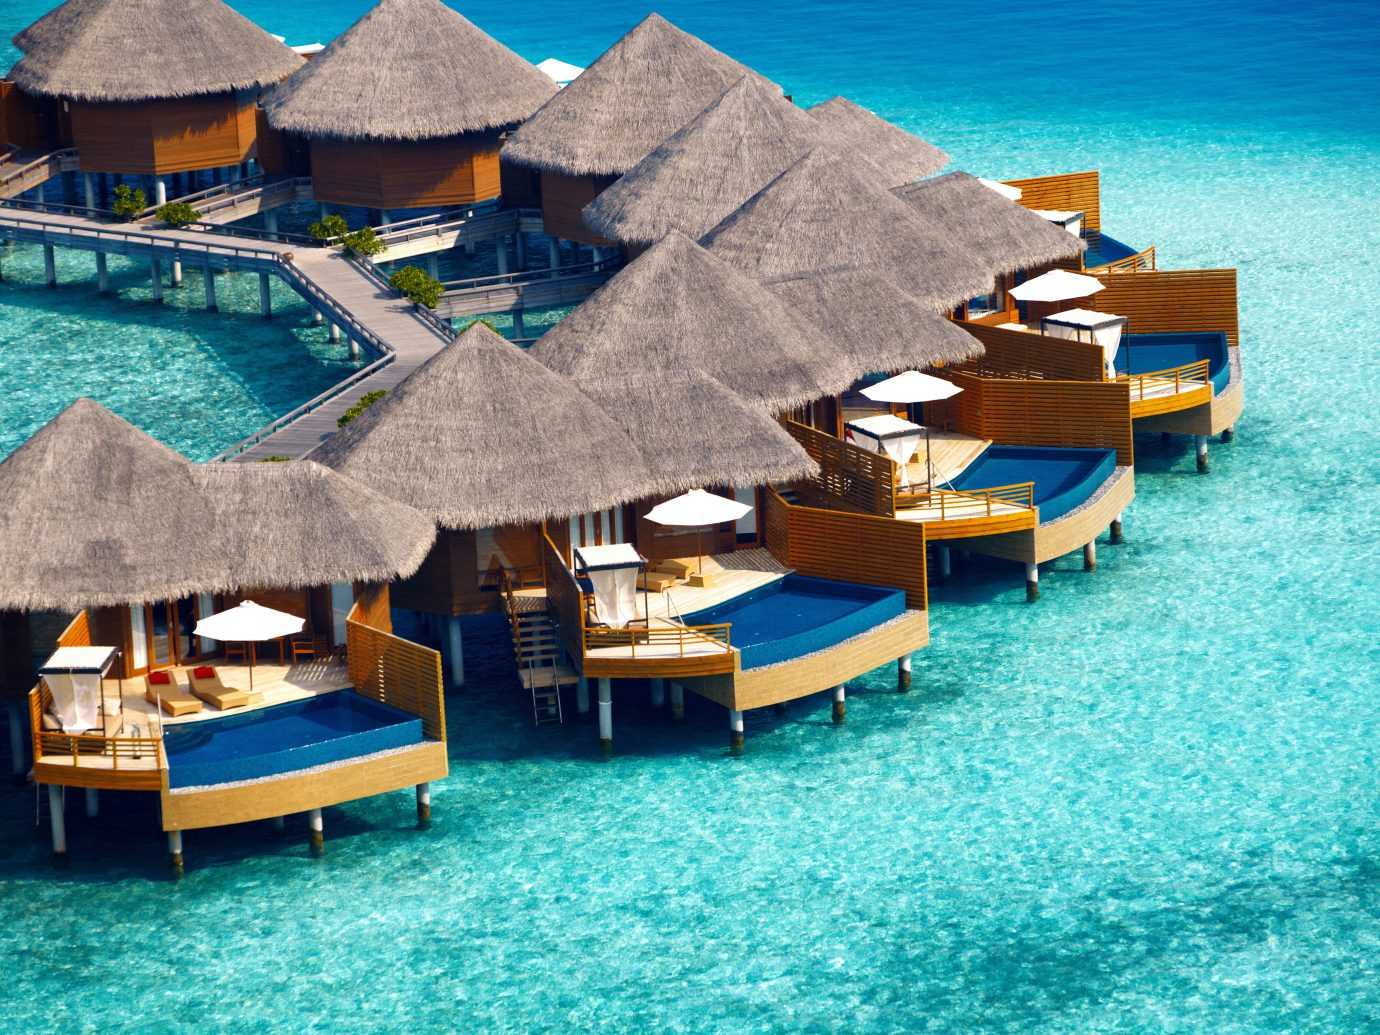 Beachfront Elegant Hotels Living Lounge Luxury Ocean Overwater Bungalow table water floor chair umbrella leisure blue Sea swimming pool vacation Resort Beach caribbean vehicle dock Harbor bay marina Water park Island swimming